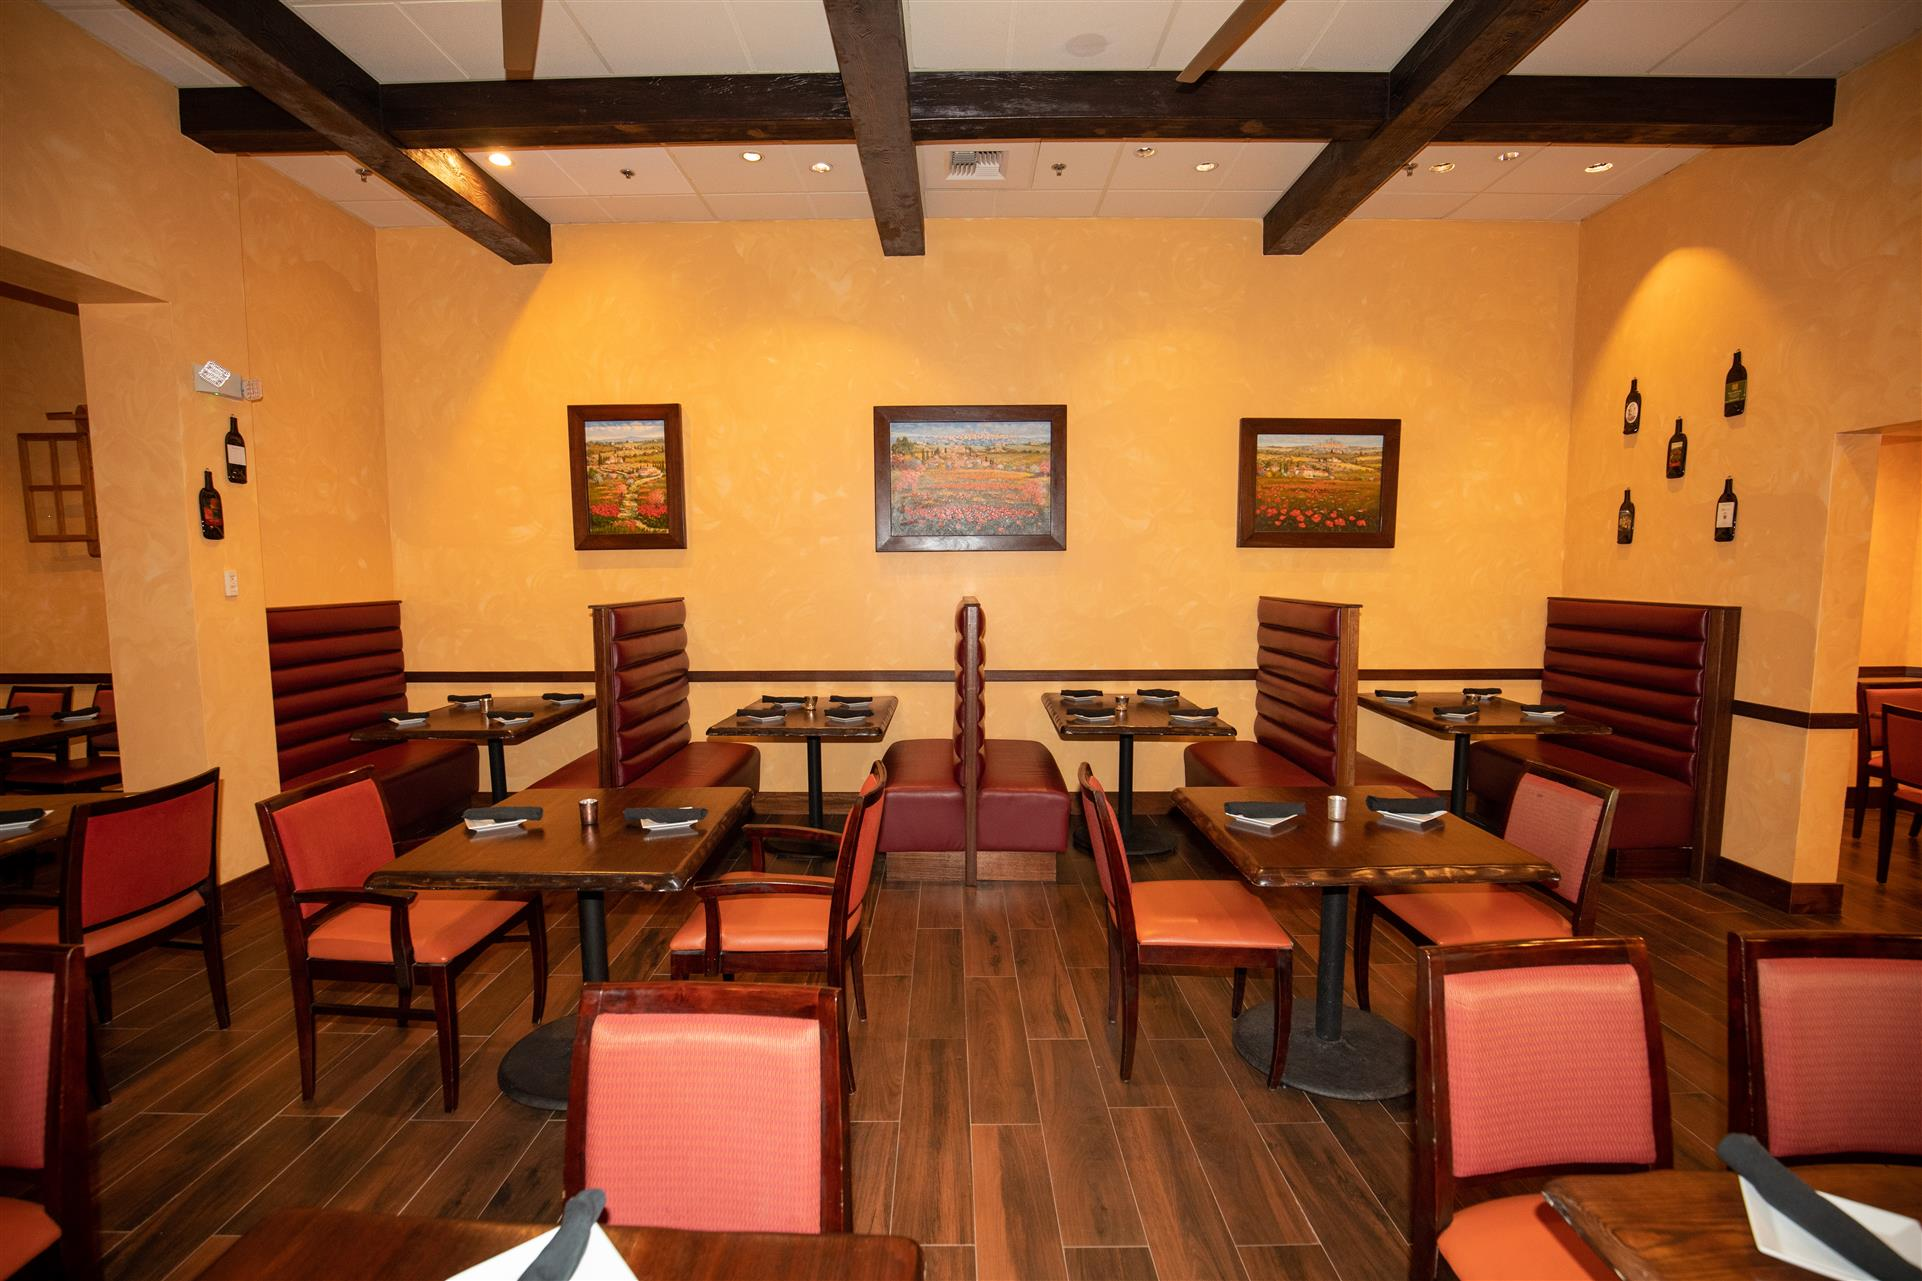 dining area with booths and tables